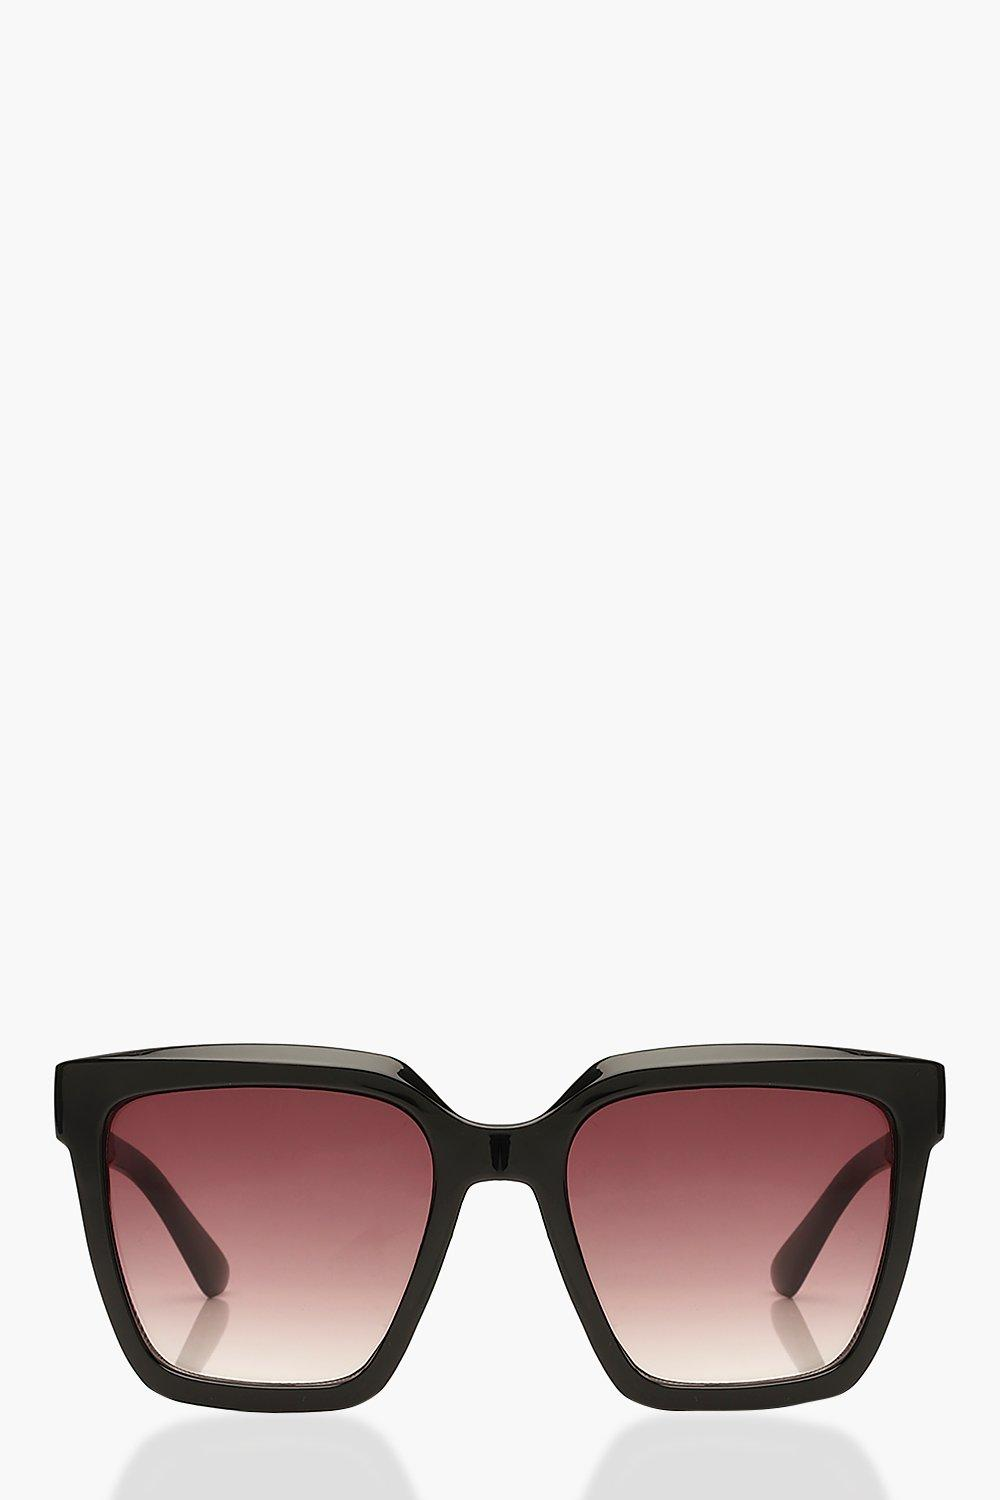 ACCESSORIES Chunky Square Oversized Sunglasses